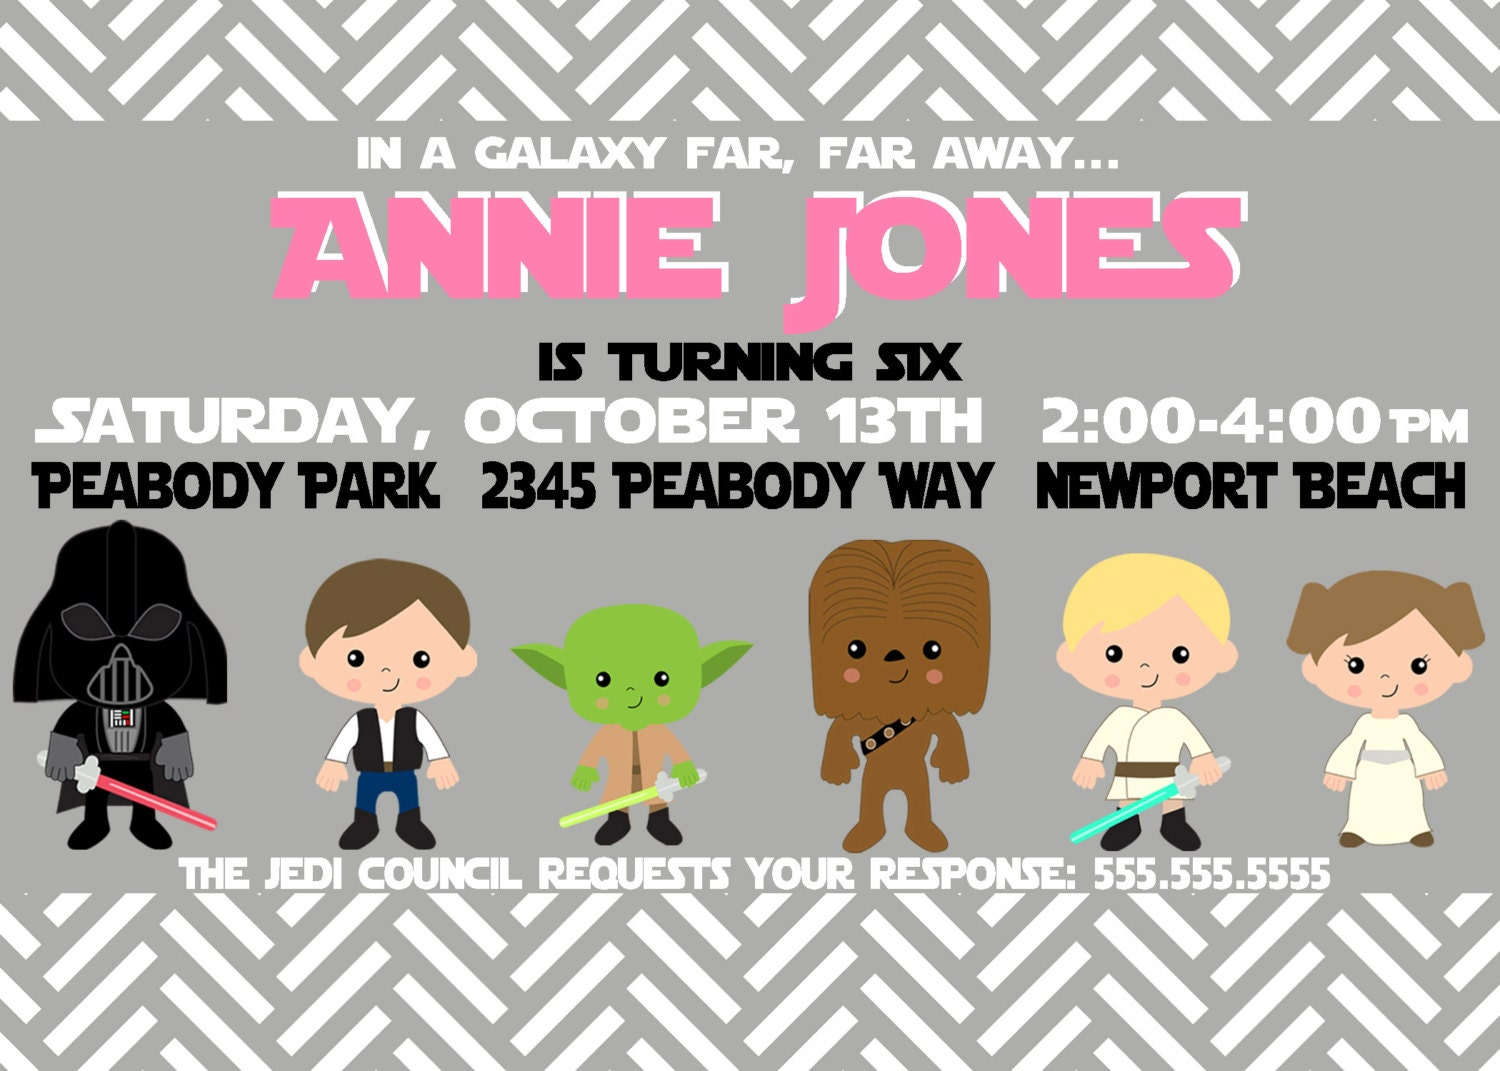 Star Wars Custom Birthday Party Pack for Girls - Star Wars Party Invitation - Party Supplies